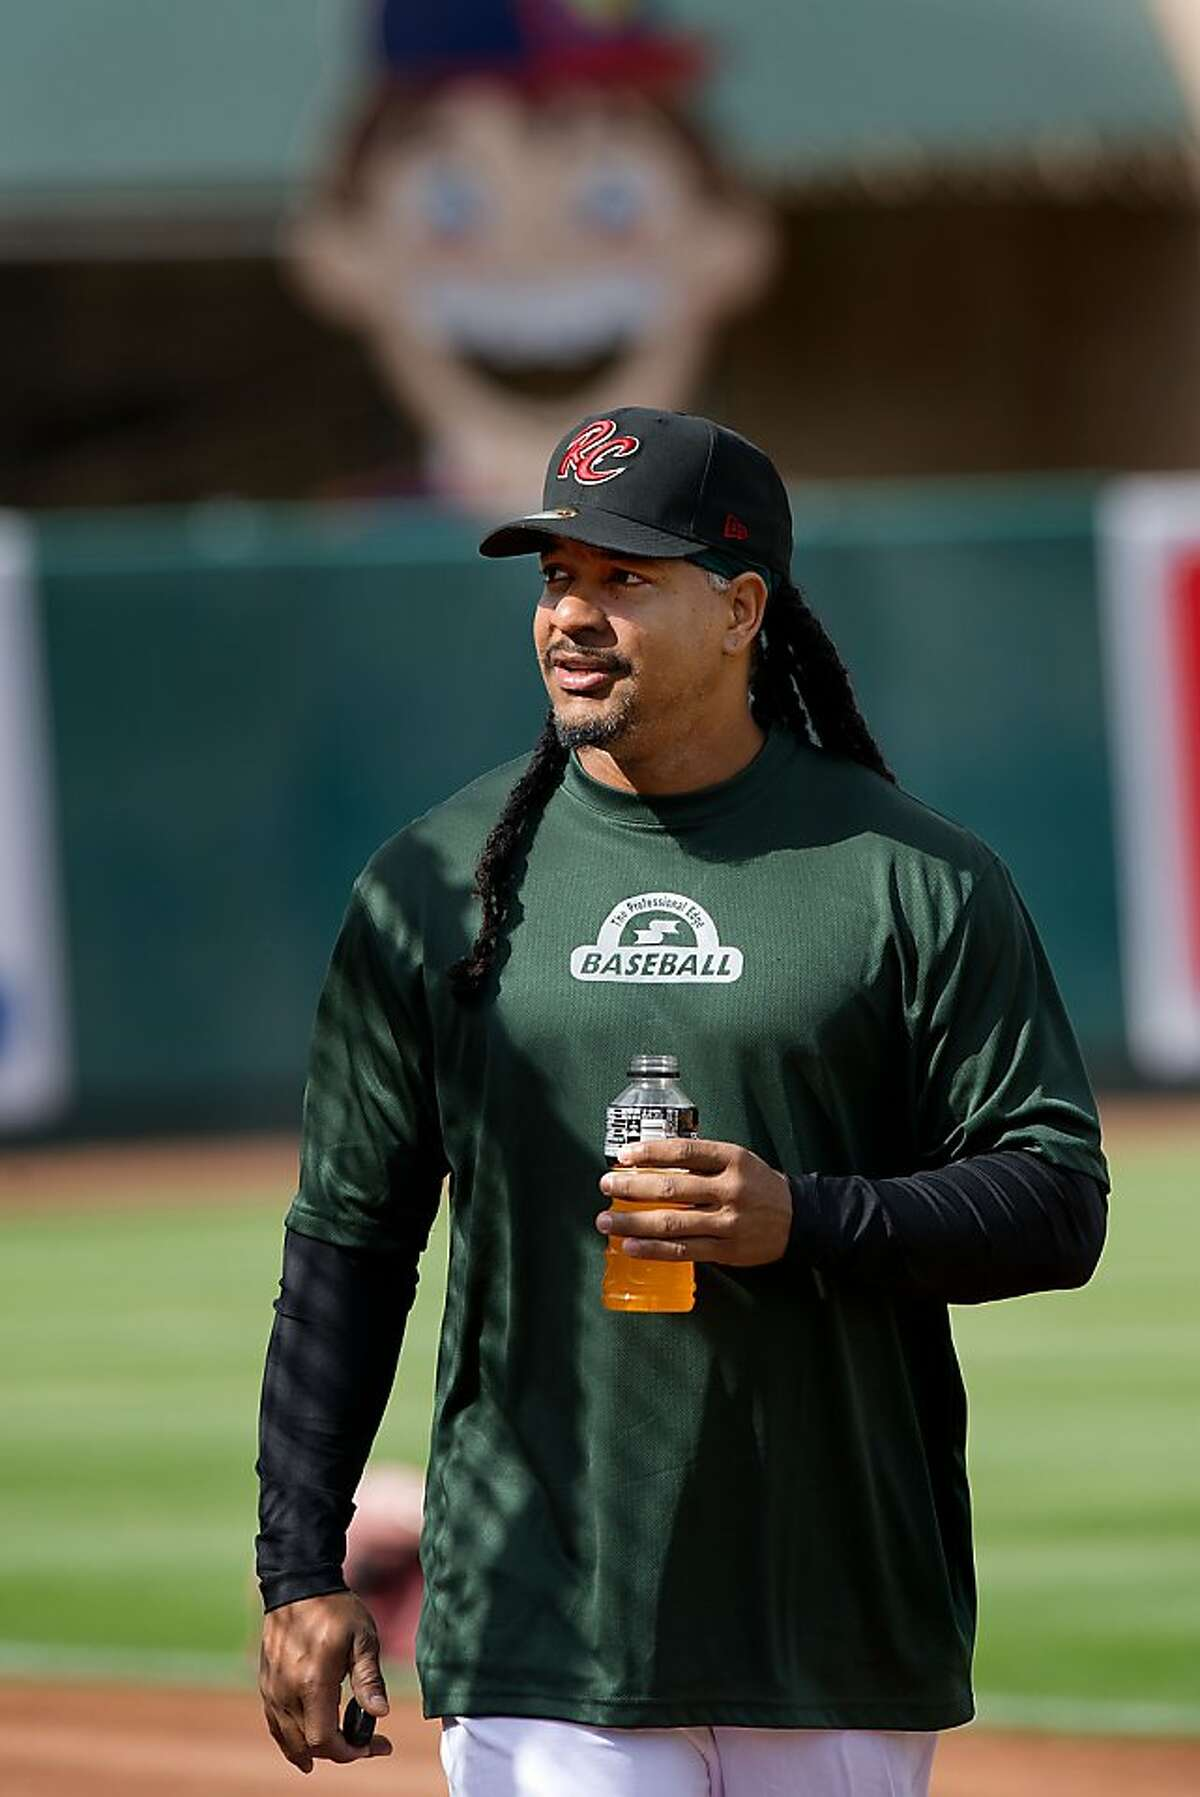 The River Cats' left fielder Manny Ramirez (11) speaks to reporters prior to the game between the Sacramento River Cats and the Reno Aces at Raley Field in West Sacramento on Friday, May 25, 2012.